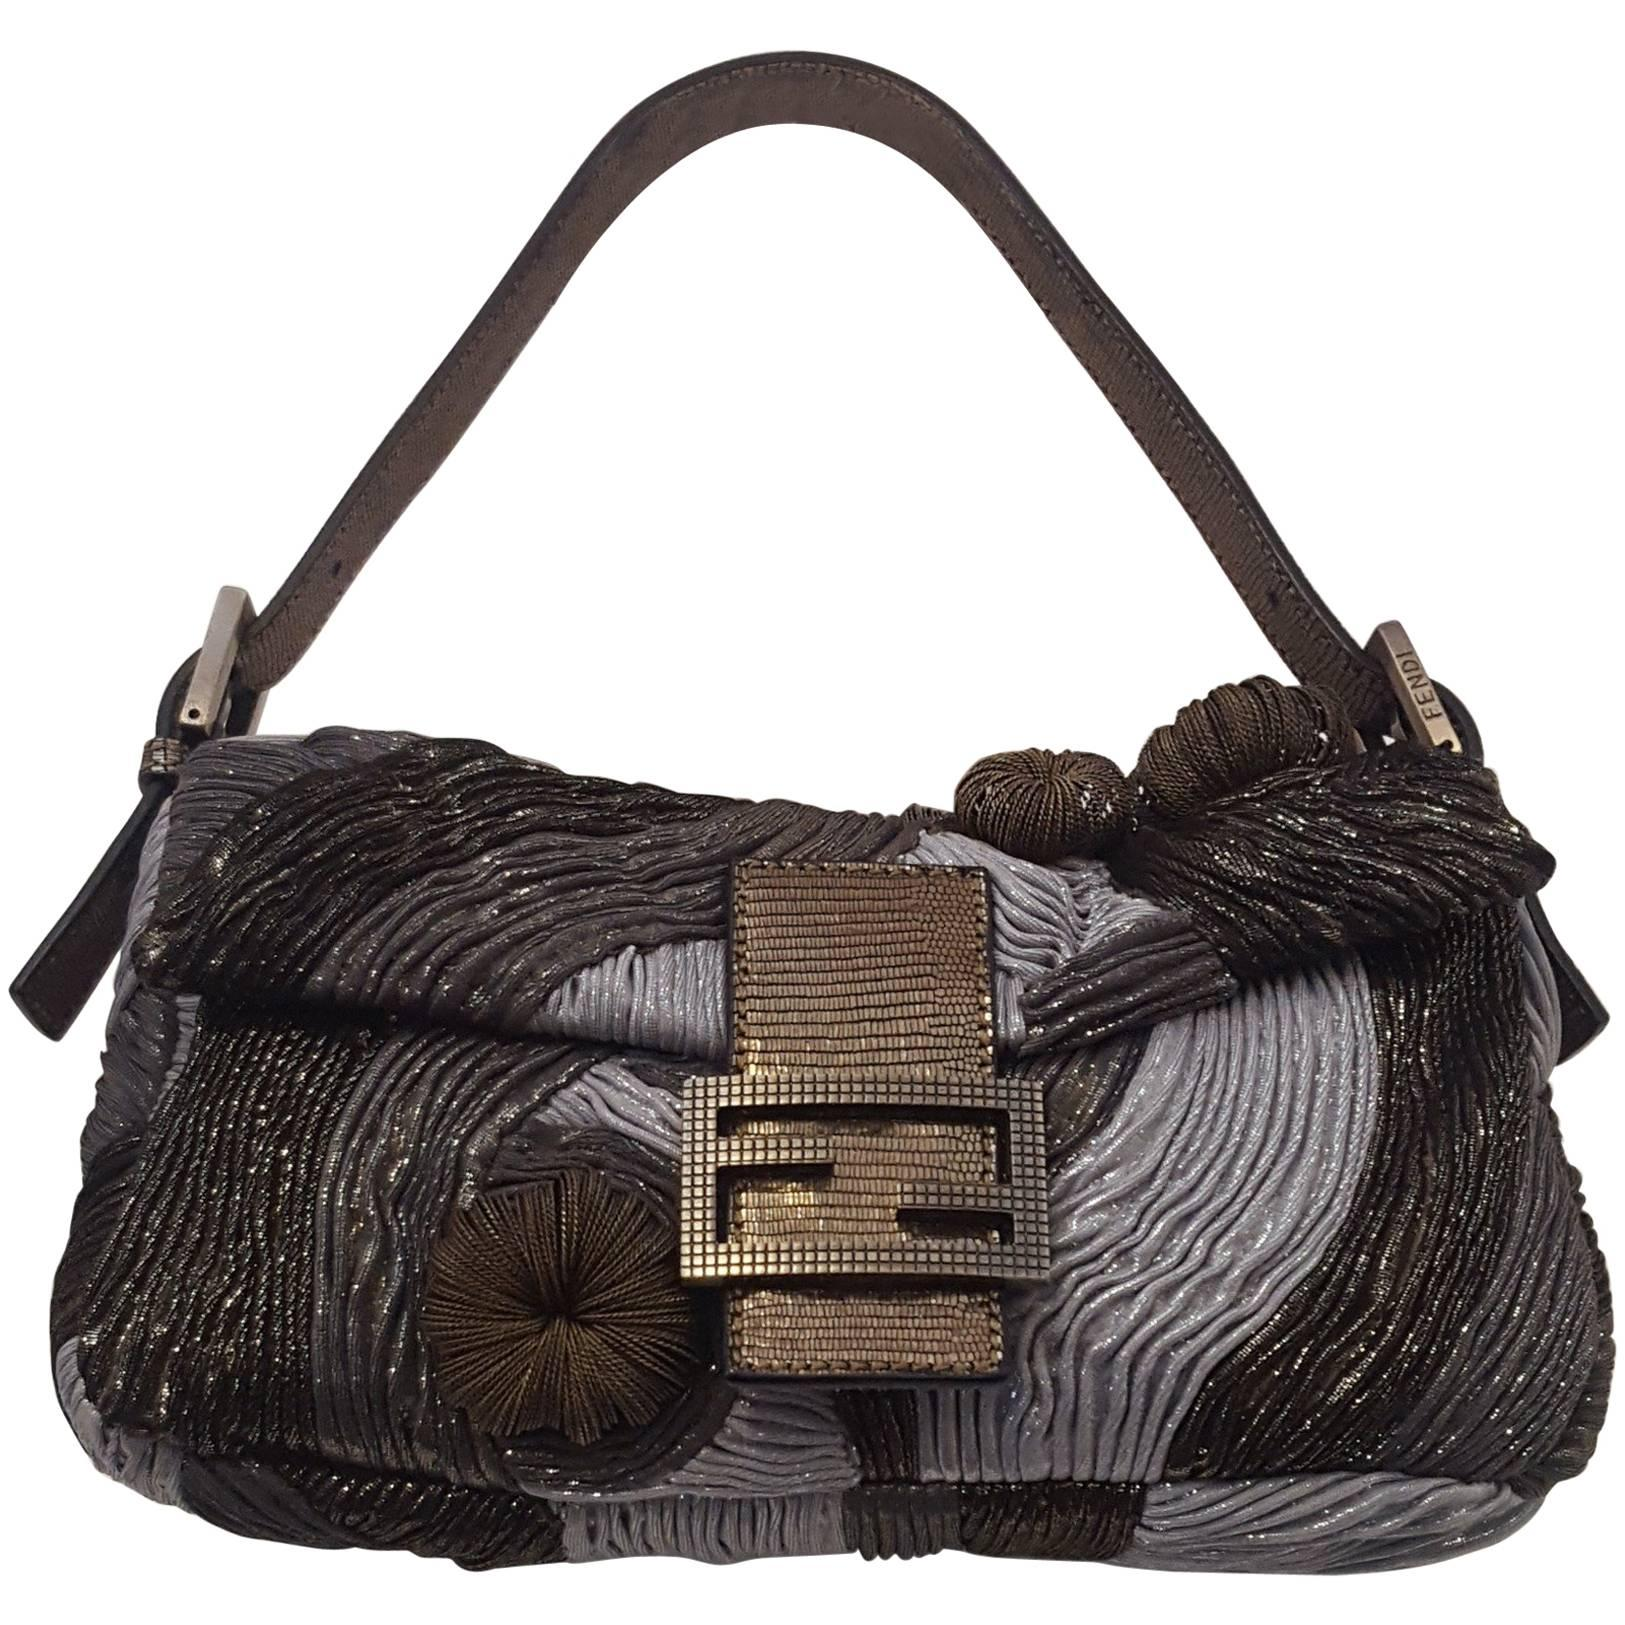 a78c4e29c2 ... ireland fabulous fendi baguette metallic medusa grey brass bag for sale  840a4 a6432